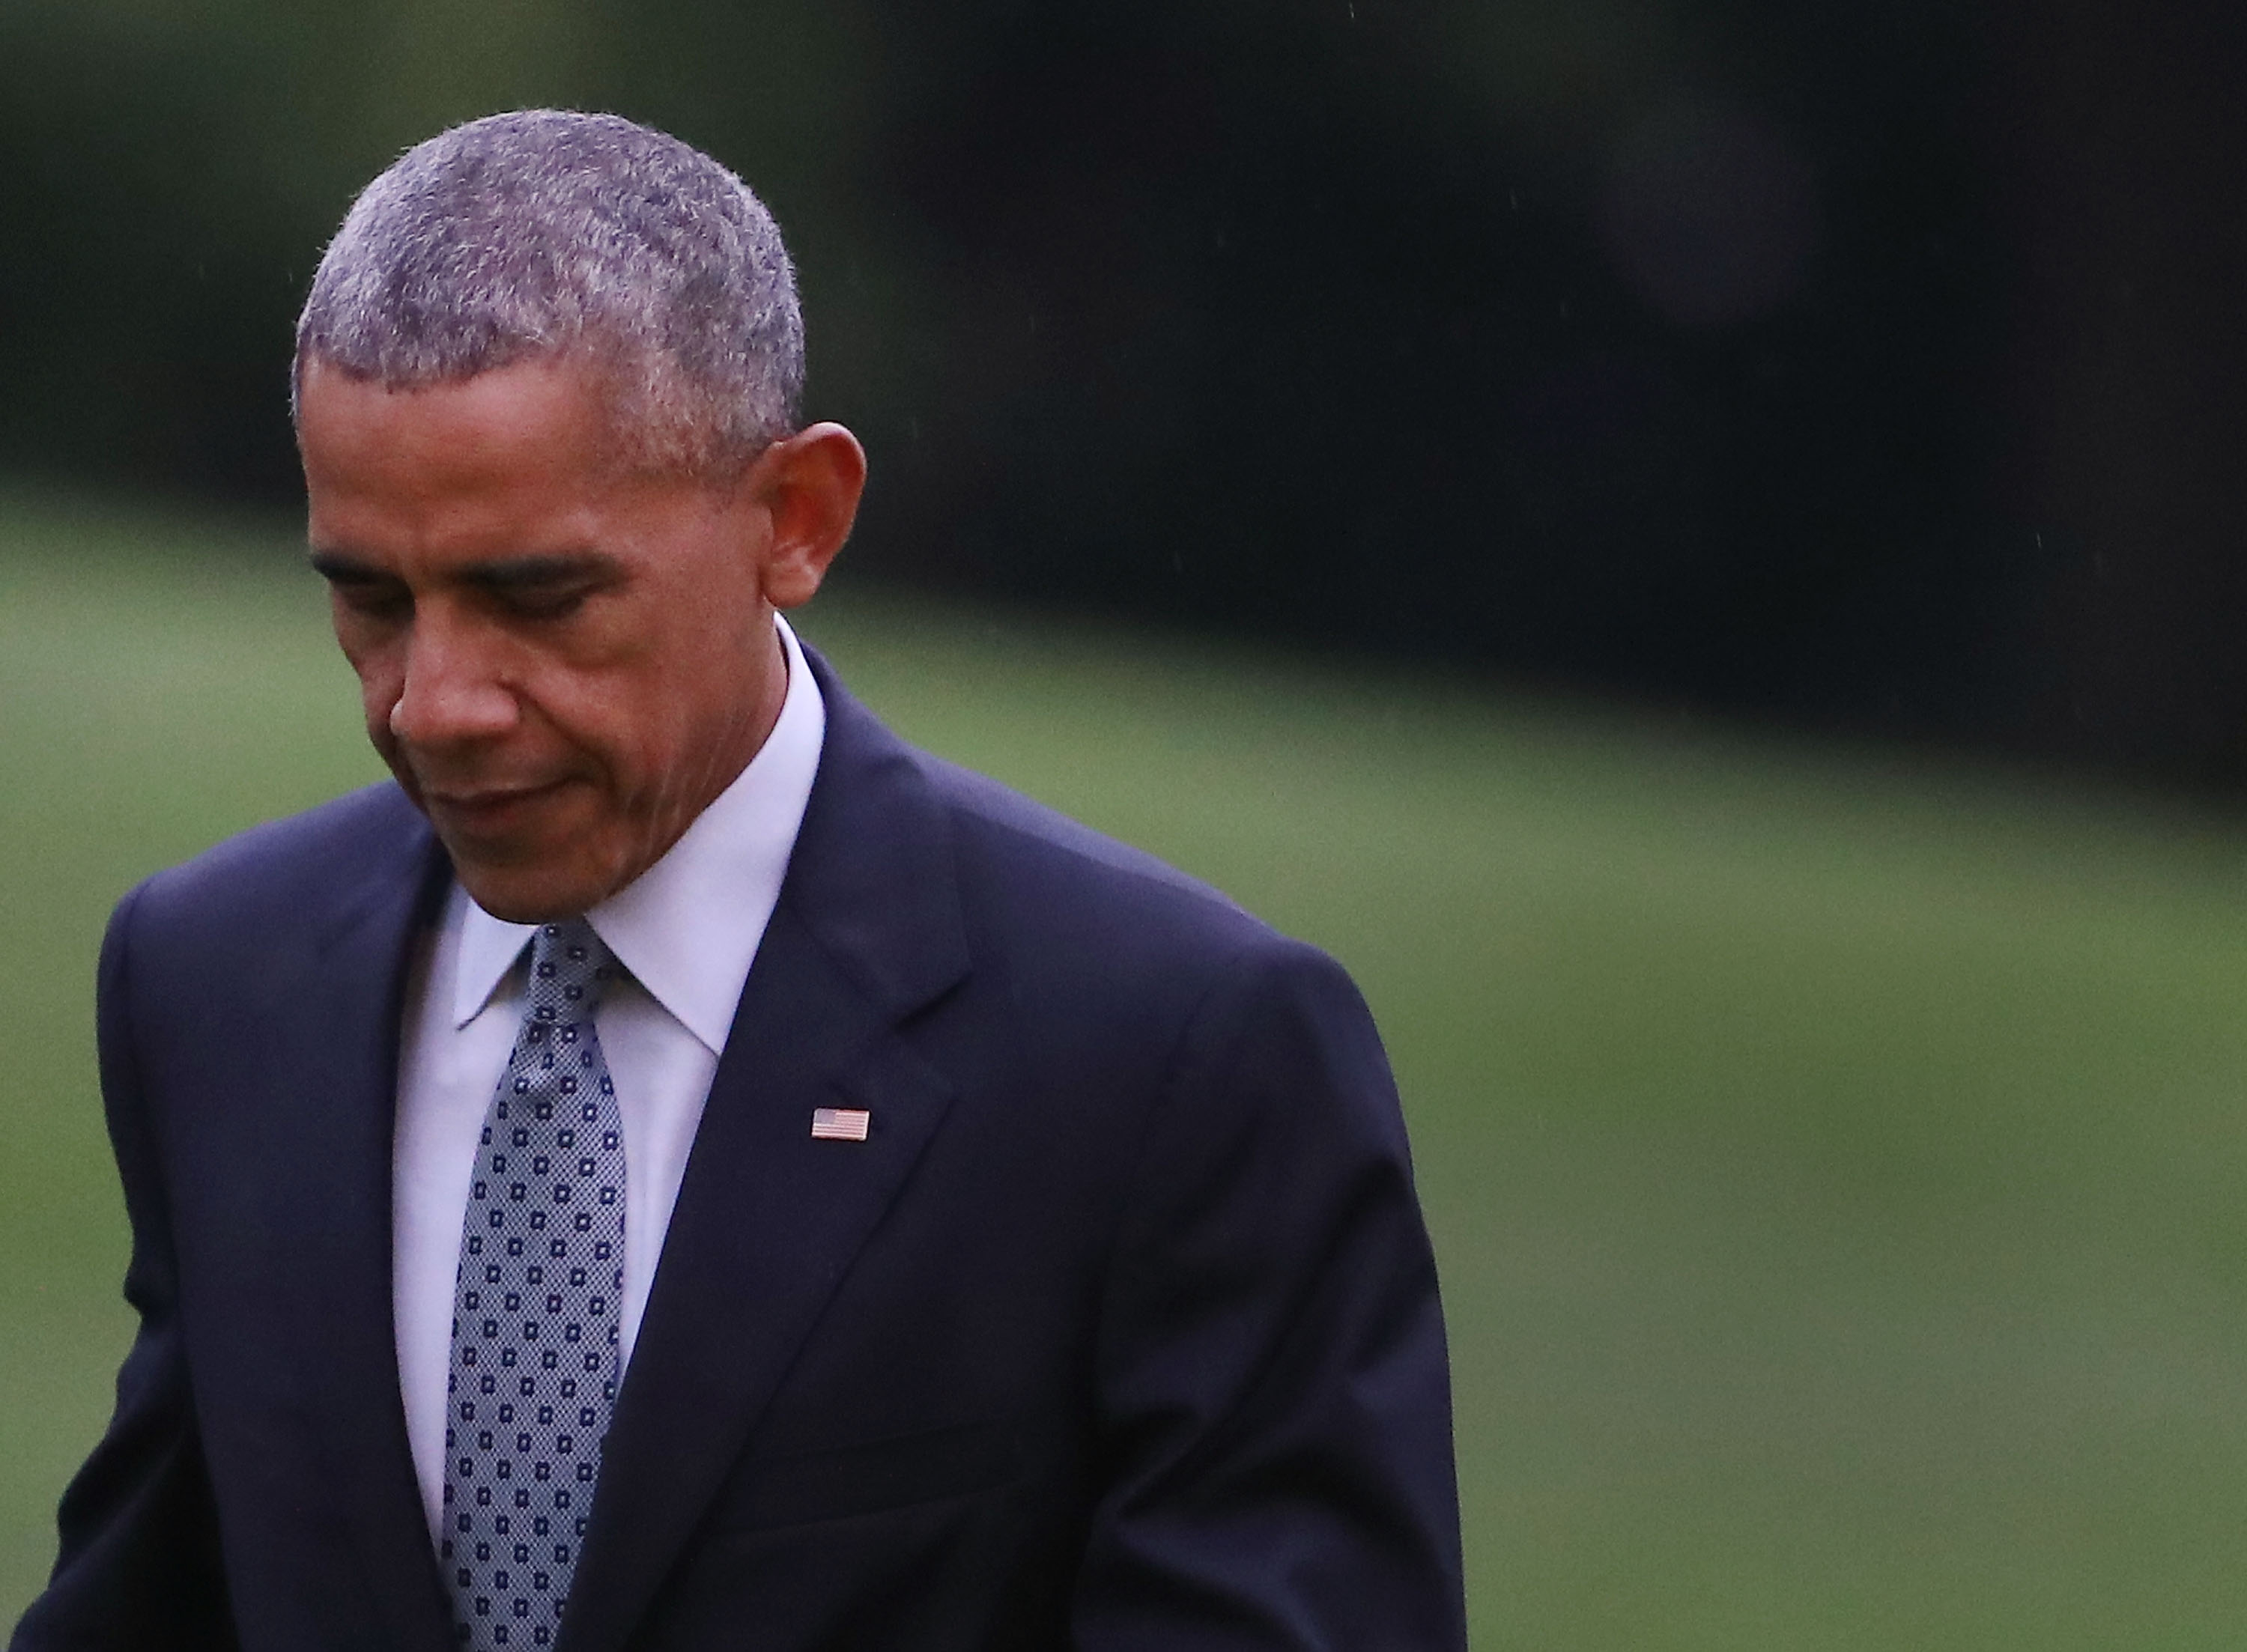 President Obama Arrives Back To The White House After Trip To Richmond, Virginia